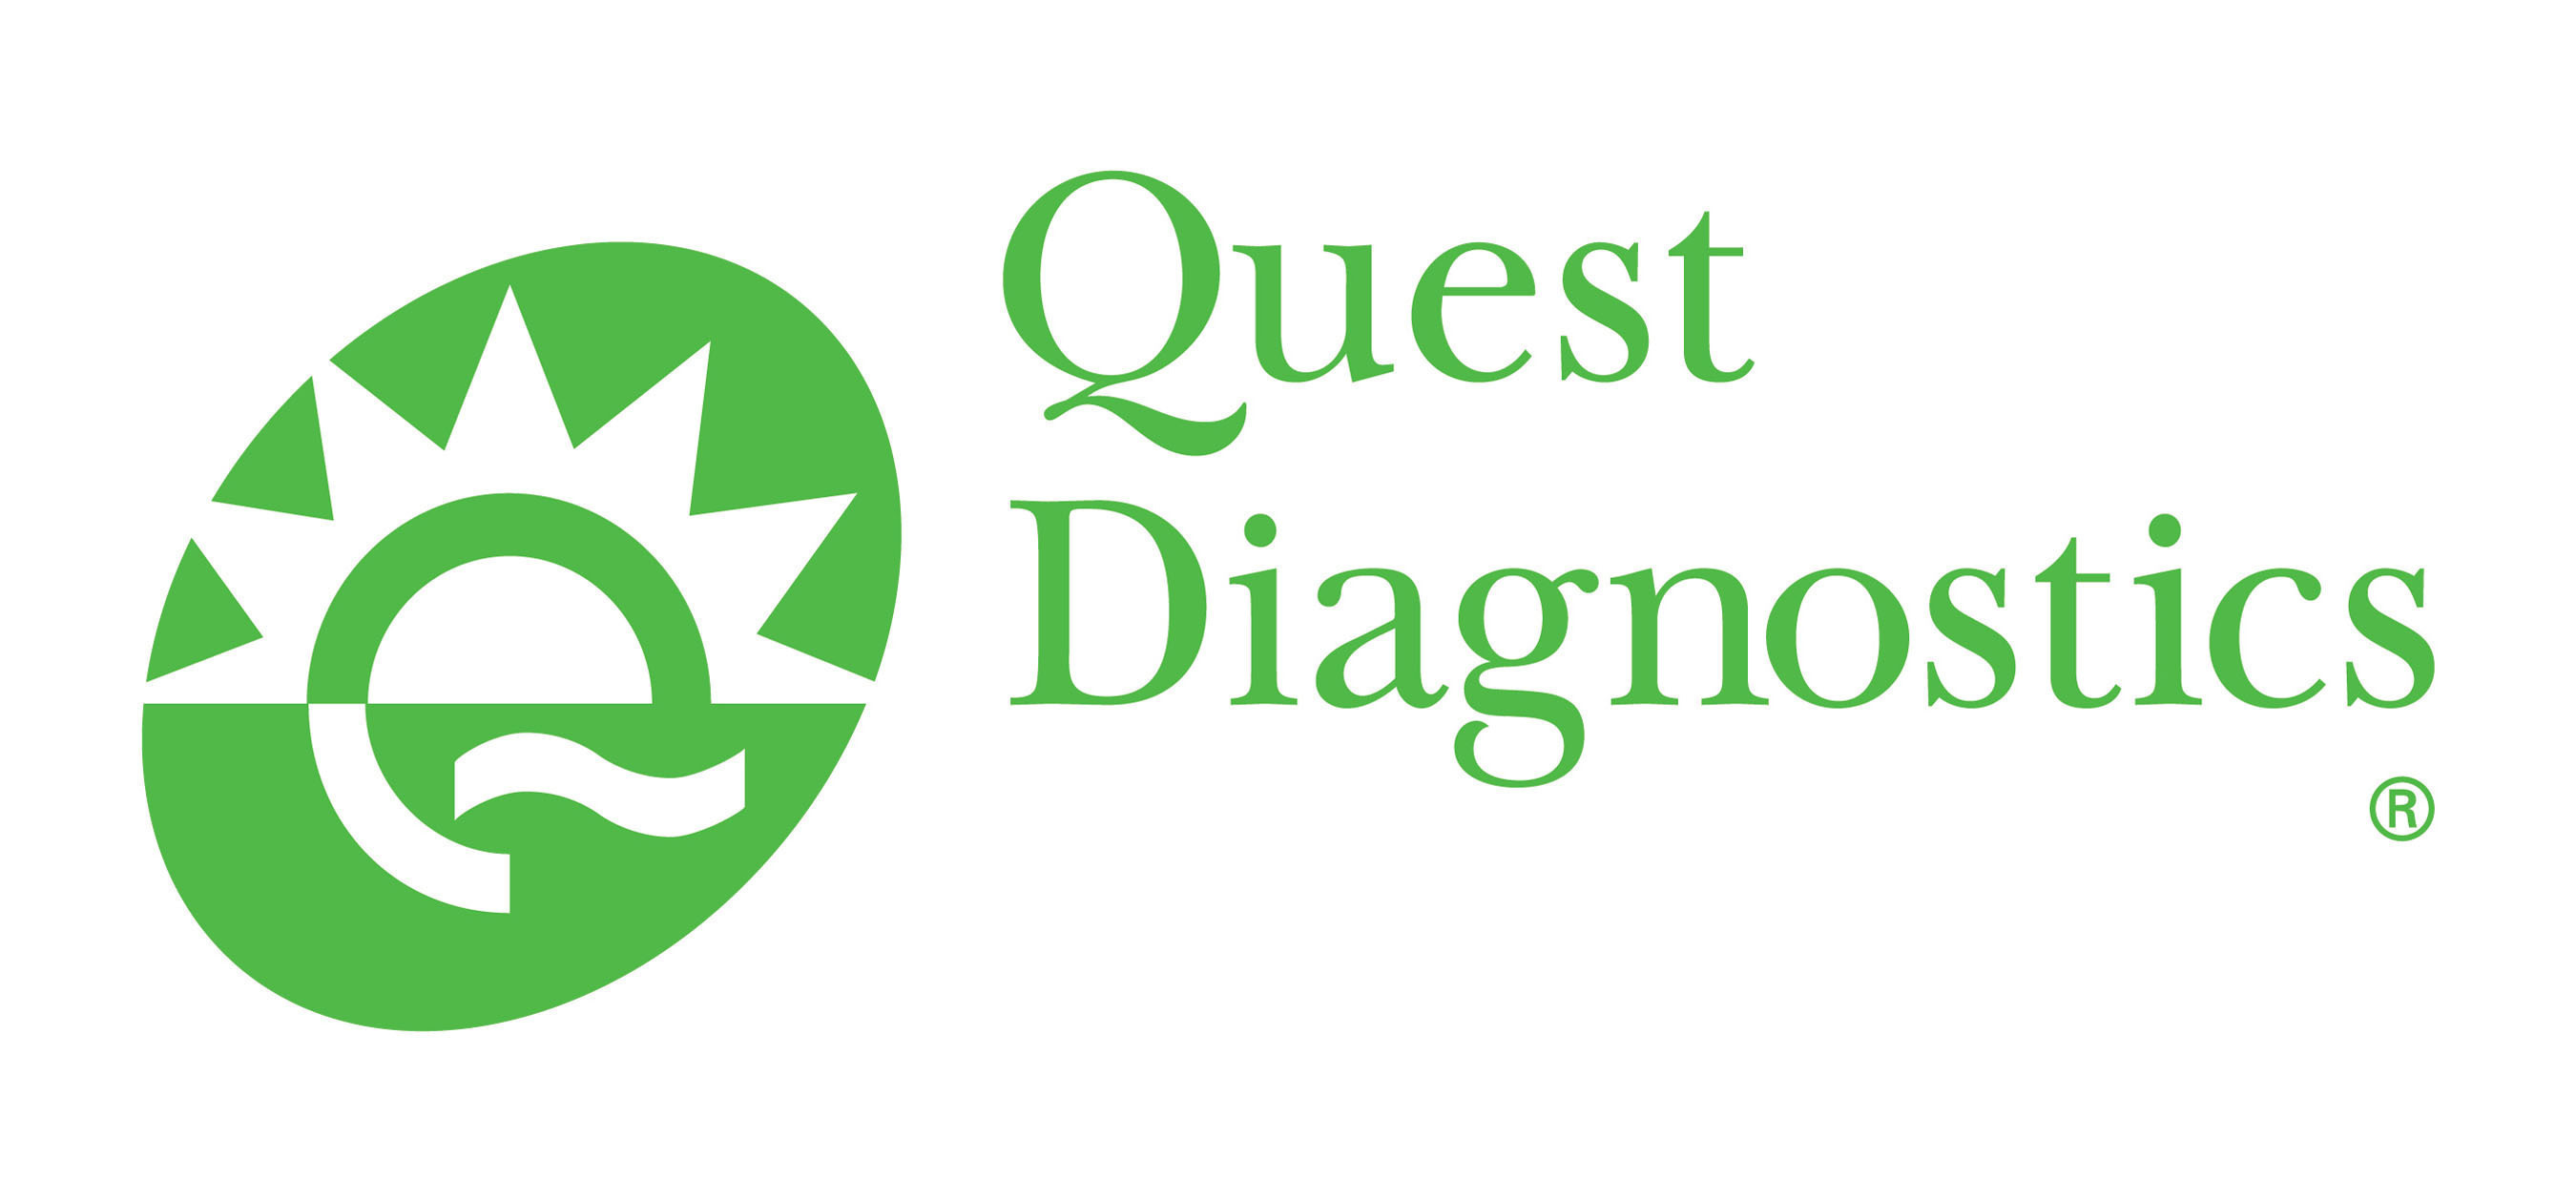 quest diagnostics A clinical reference laboratory offering research and development of enzyme, cytokine and diagnostic assays.